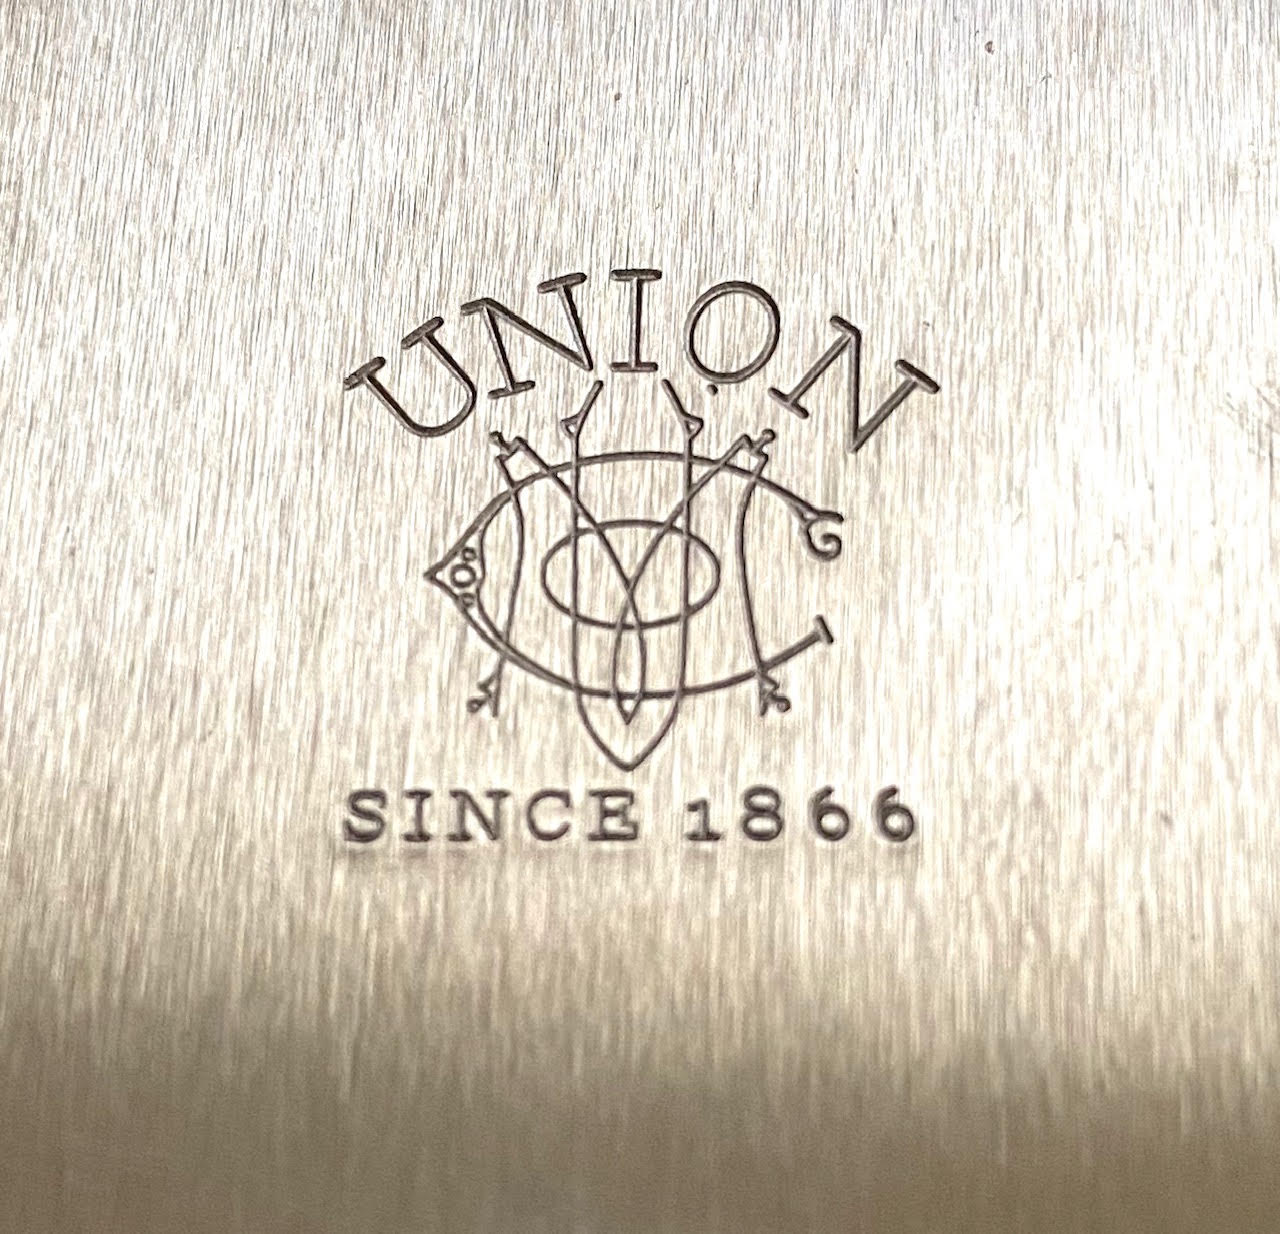 union mfg hand stamp 2